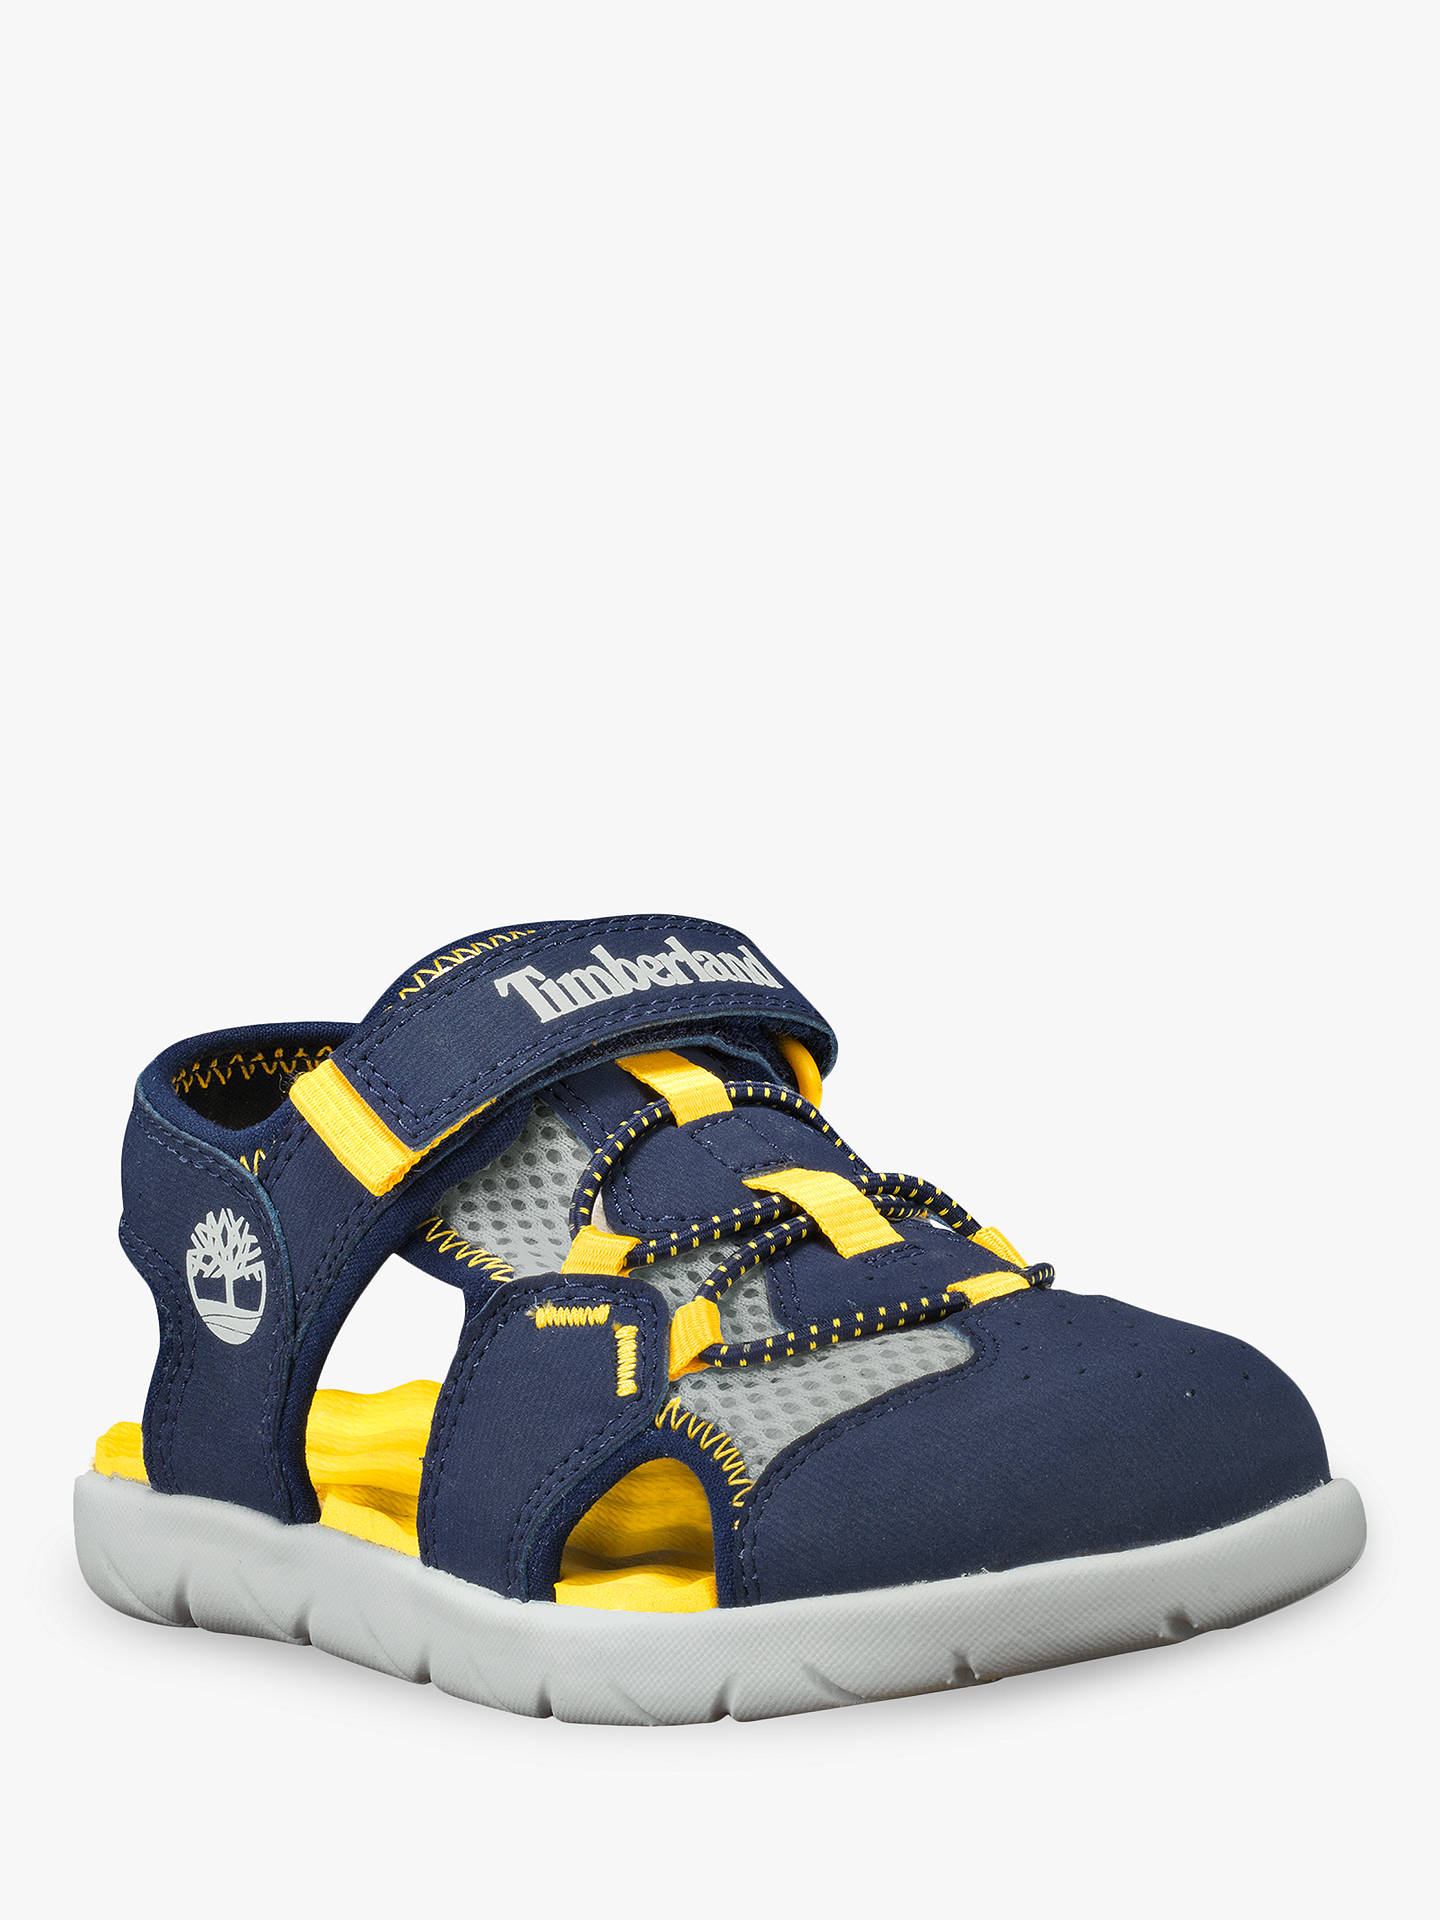 Smart Toddler Timberland Sandals Kids' Clothes, Shoes & Accs. Clothes, Shoes & Accessories